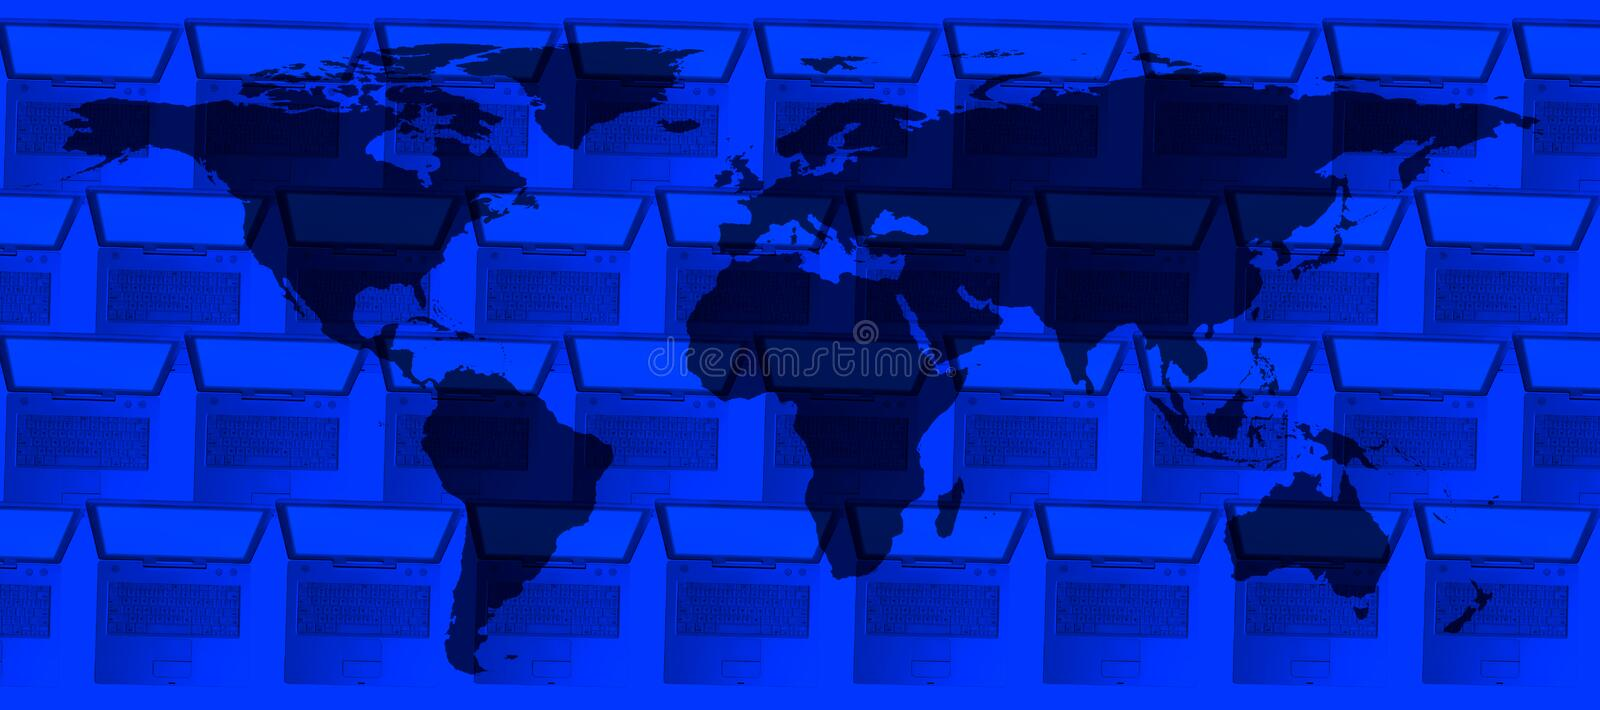 Conceptual technology image of computers and world stock image